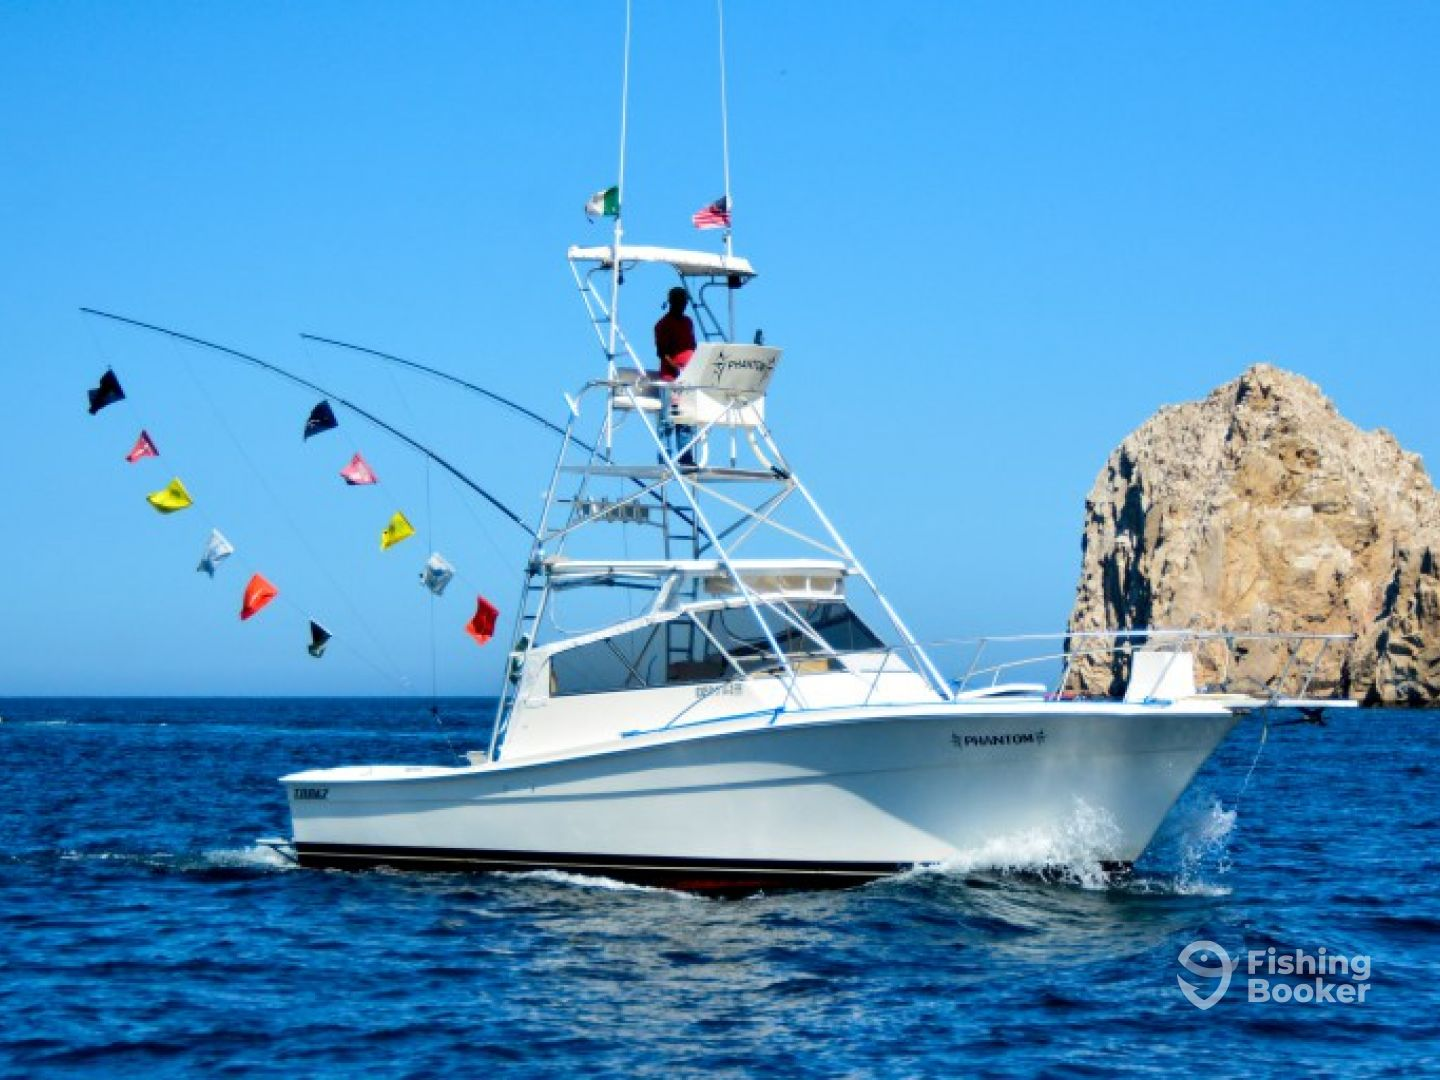 Phantom fishing cabo phantom cabo san lucas mexico for Fishing cabo san lucas